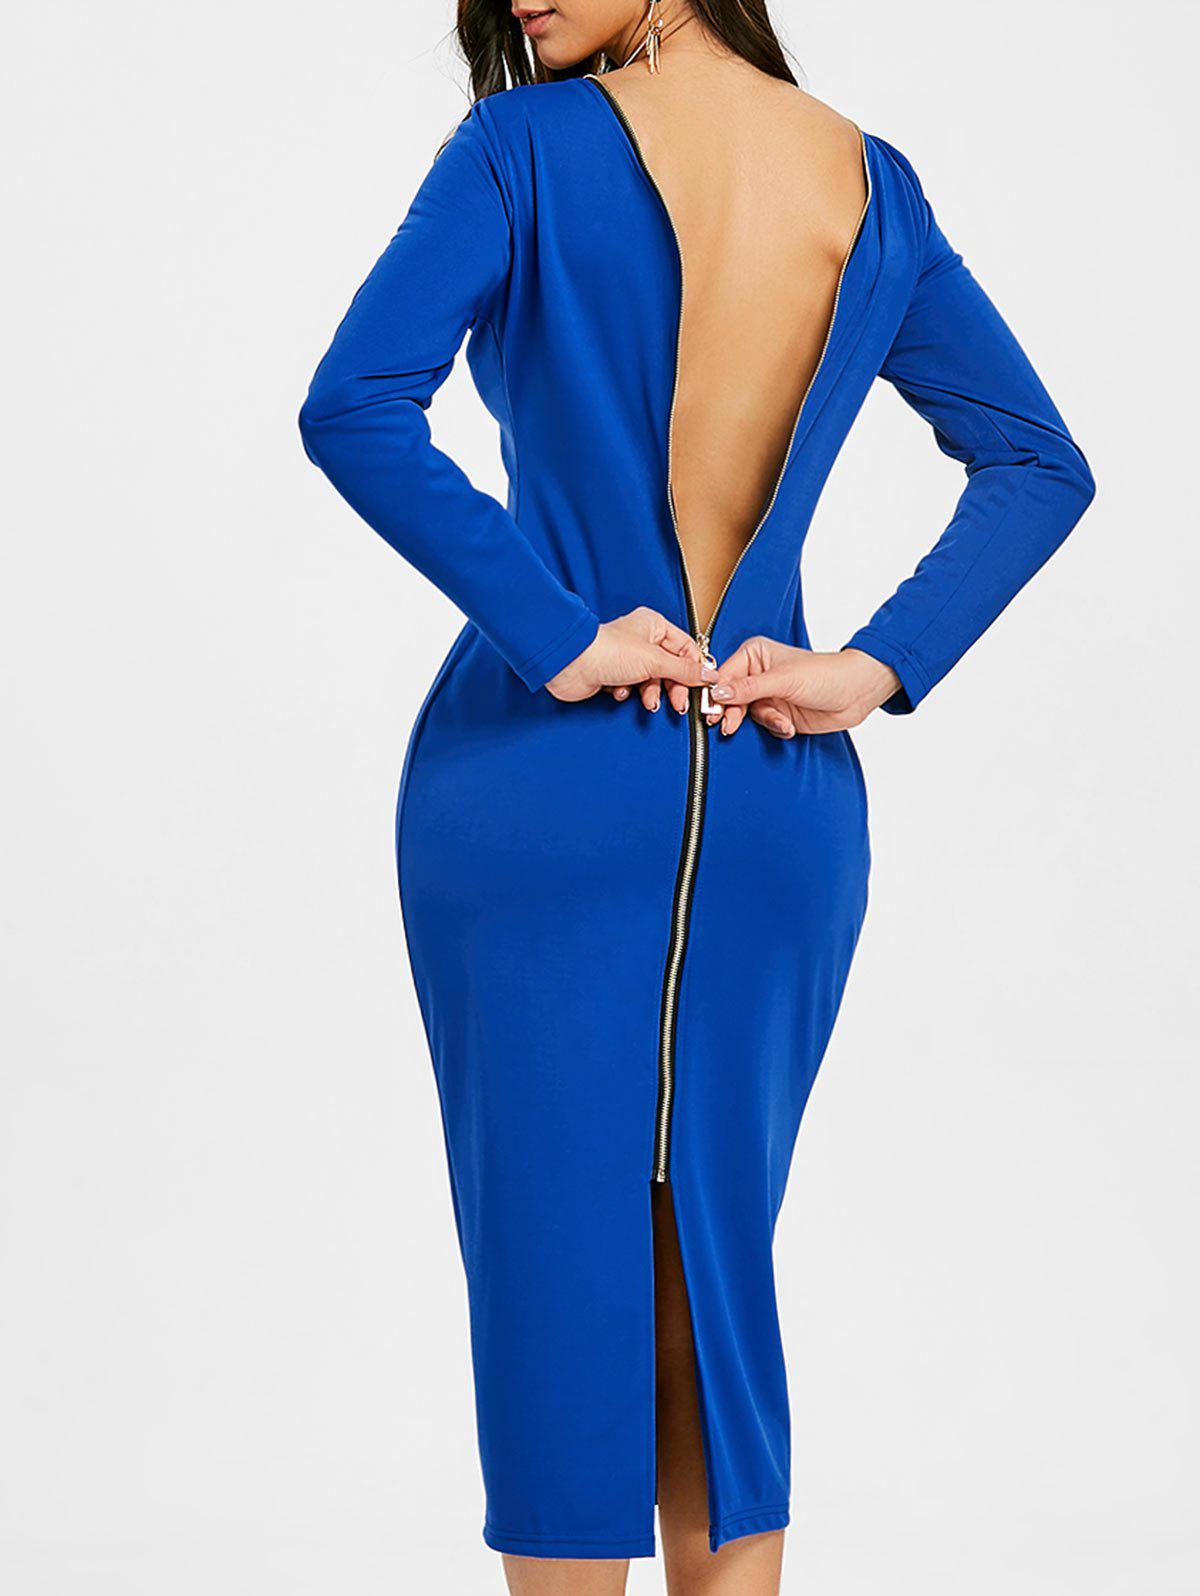 Back Zip Up Long Sleeve Bodycon Dress - BLUE L